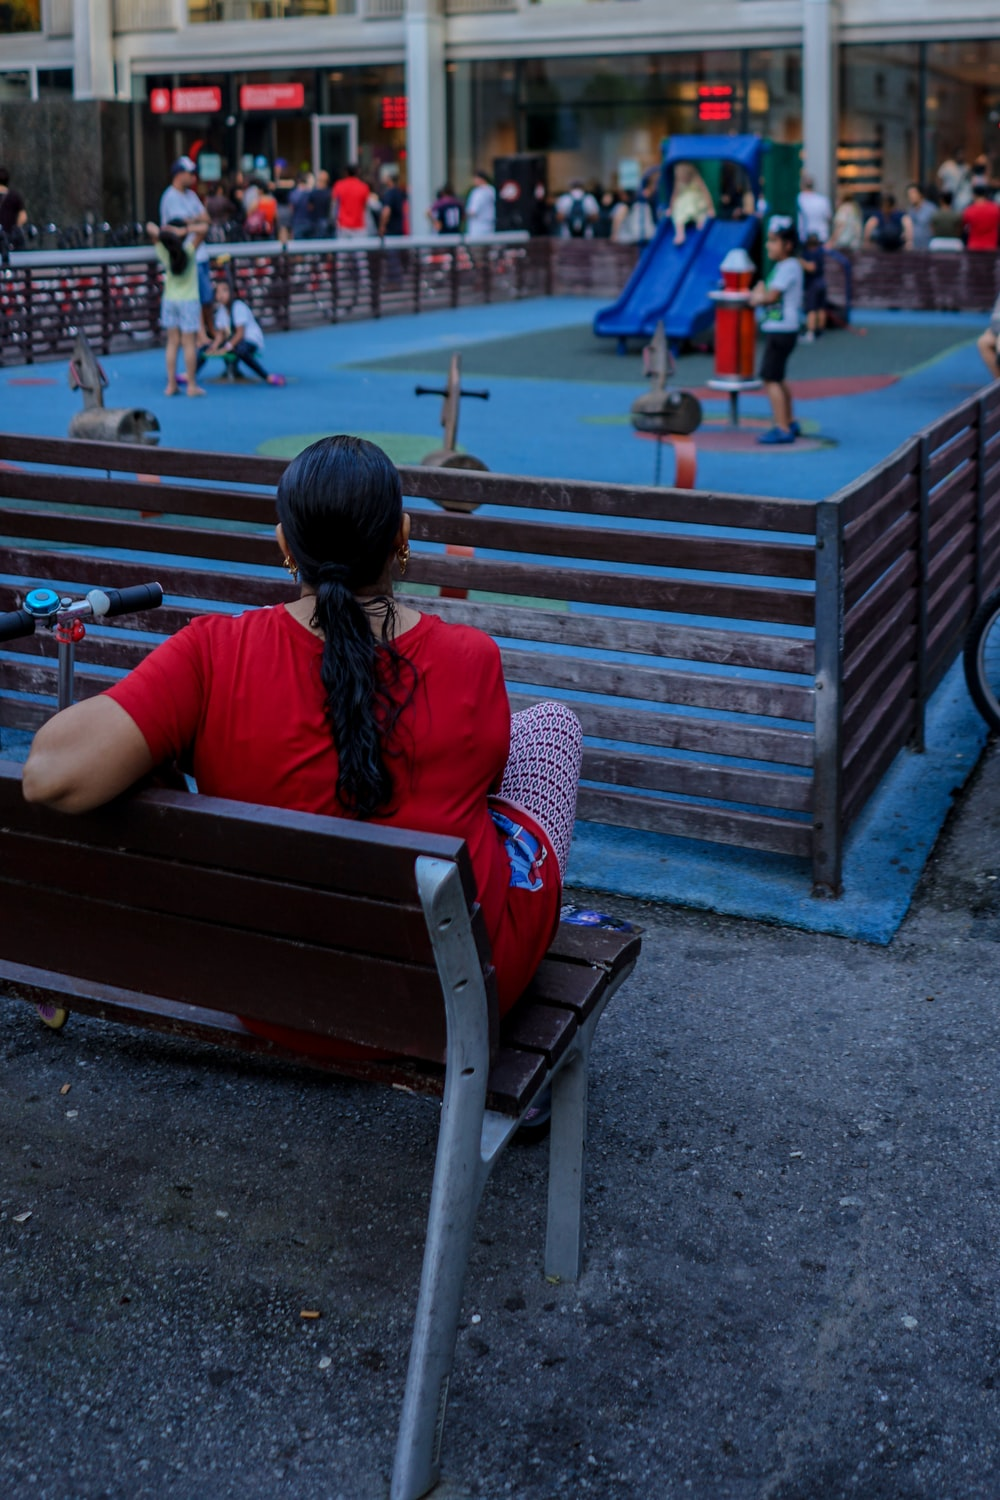 woman in red top sitting on bench